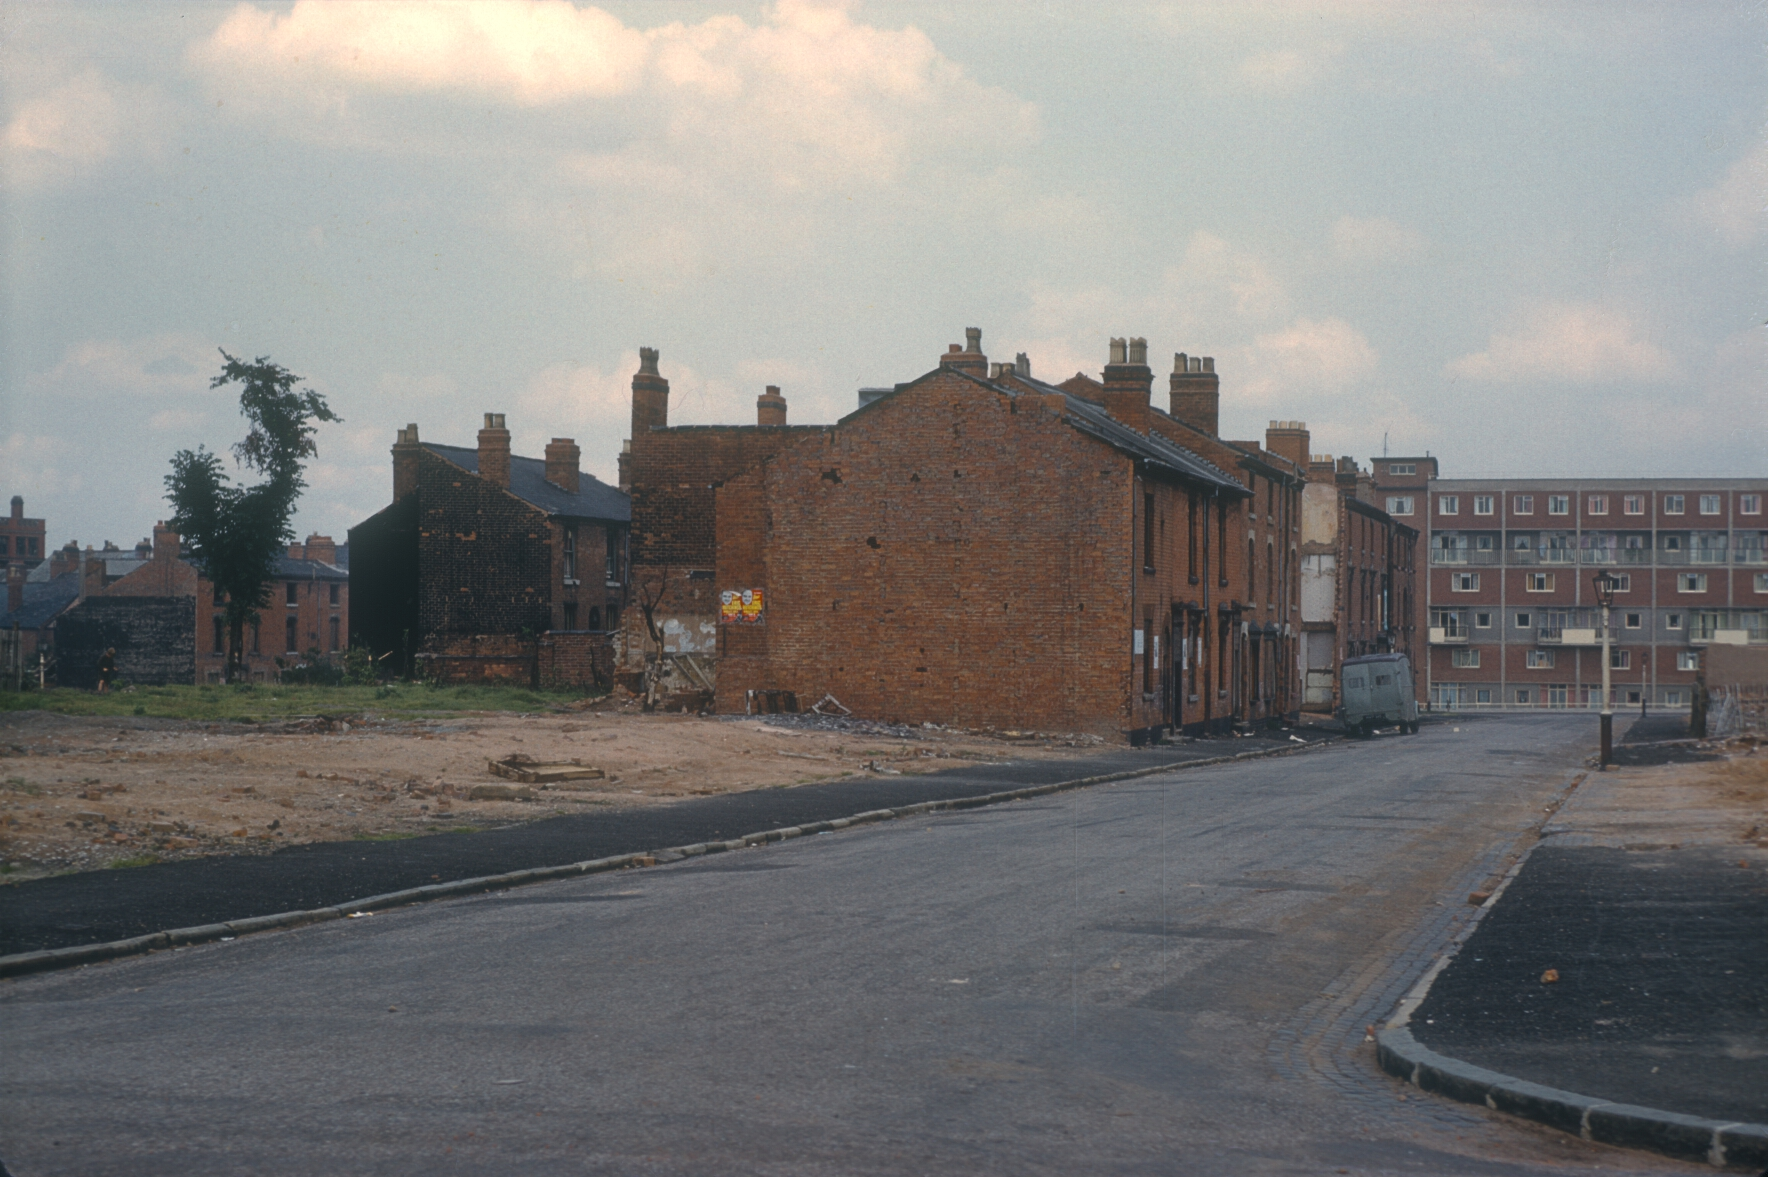 Ladywood redevelopment area - Demolition of 19th century houses with back courts. Rann st (View point corner of Gilby RdRann St) 10th August 1960